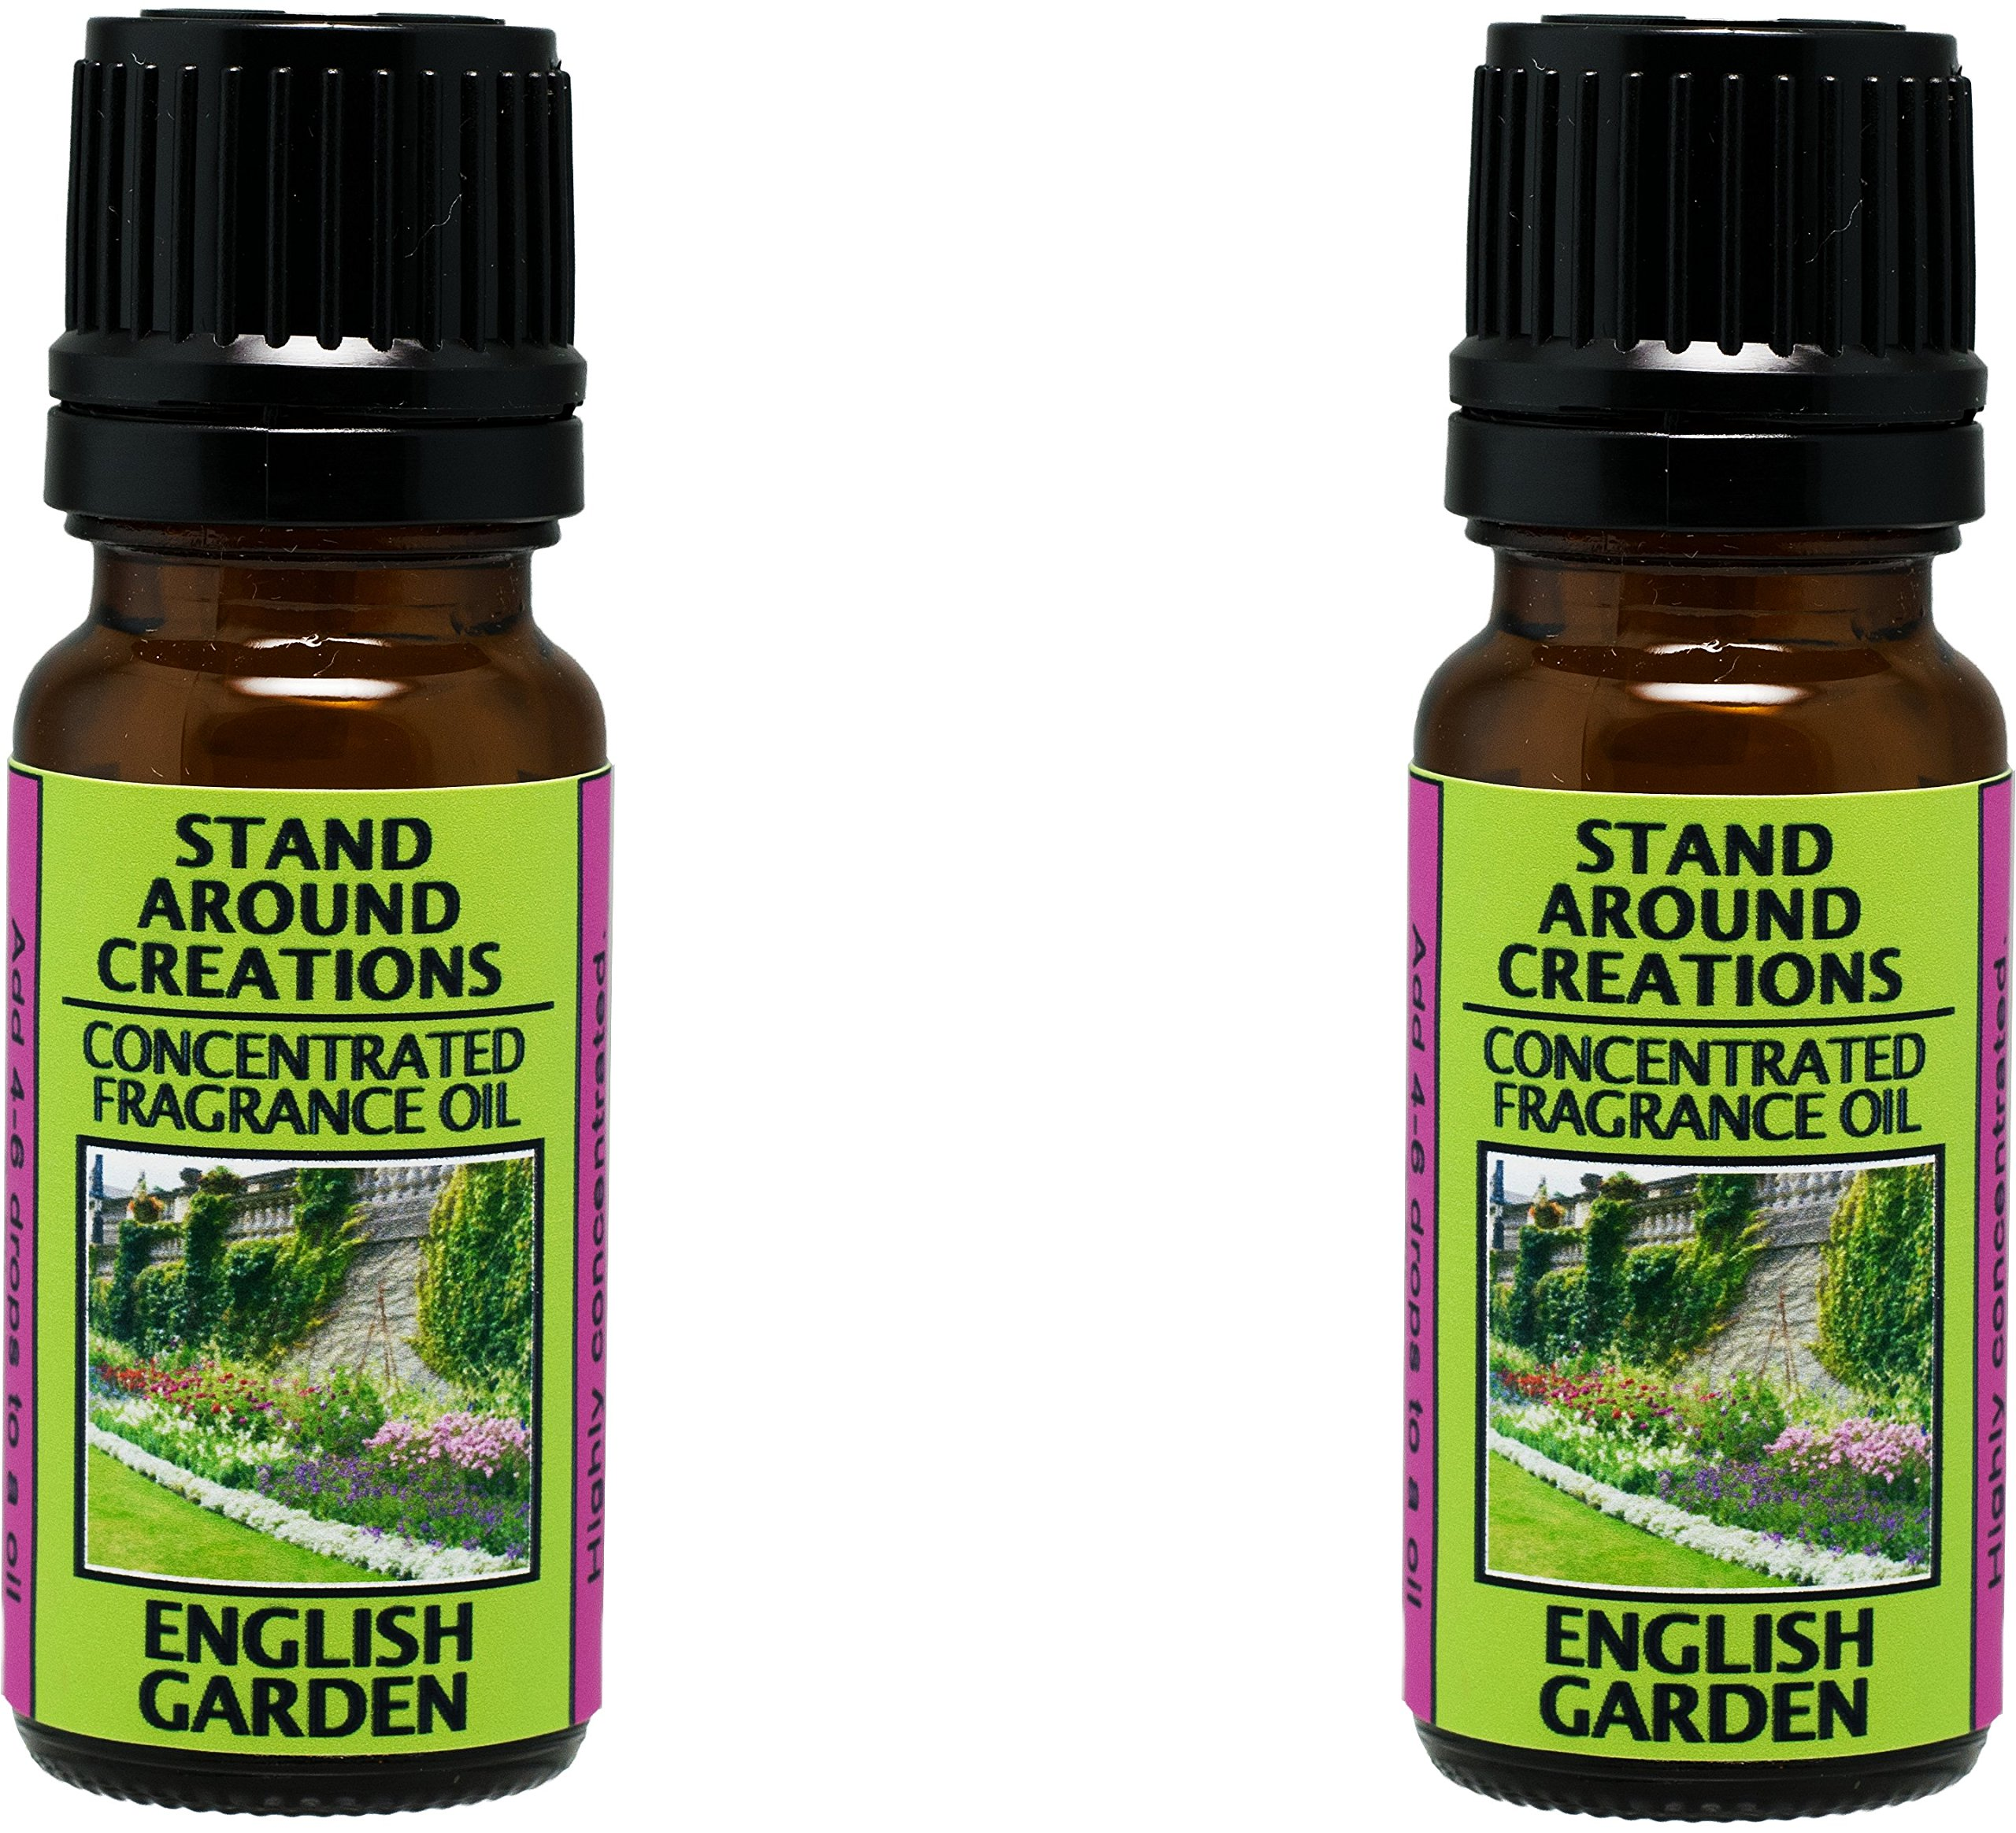 Set of 2 - Concentrated Fragrance Oil - English Garden - Notes of lily, lilac, rose & hyacinth. Made w/natural essential oils. (.33 fl.oz.) by Stand Around Creations (Image #1)